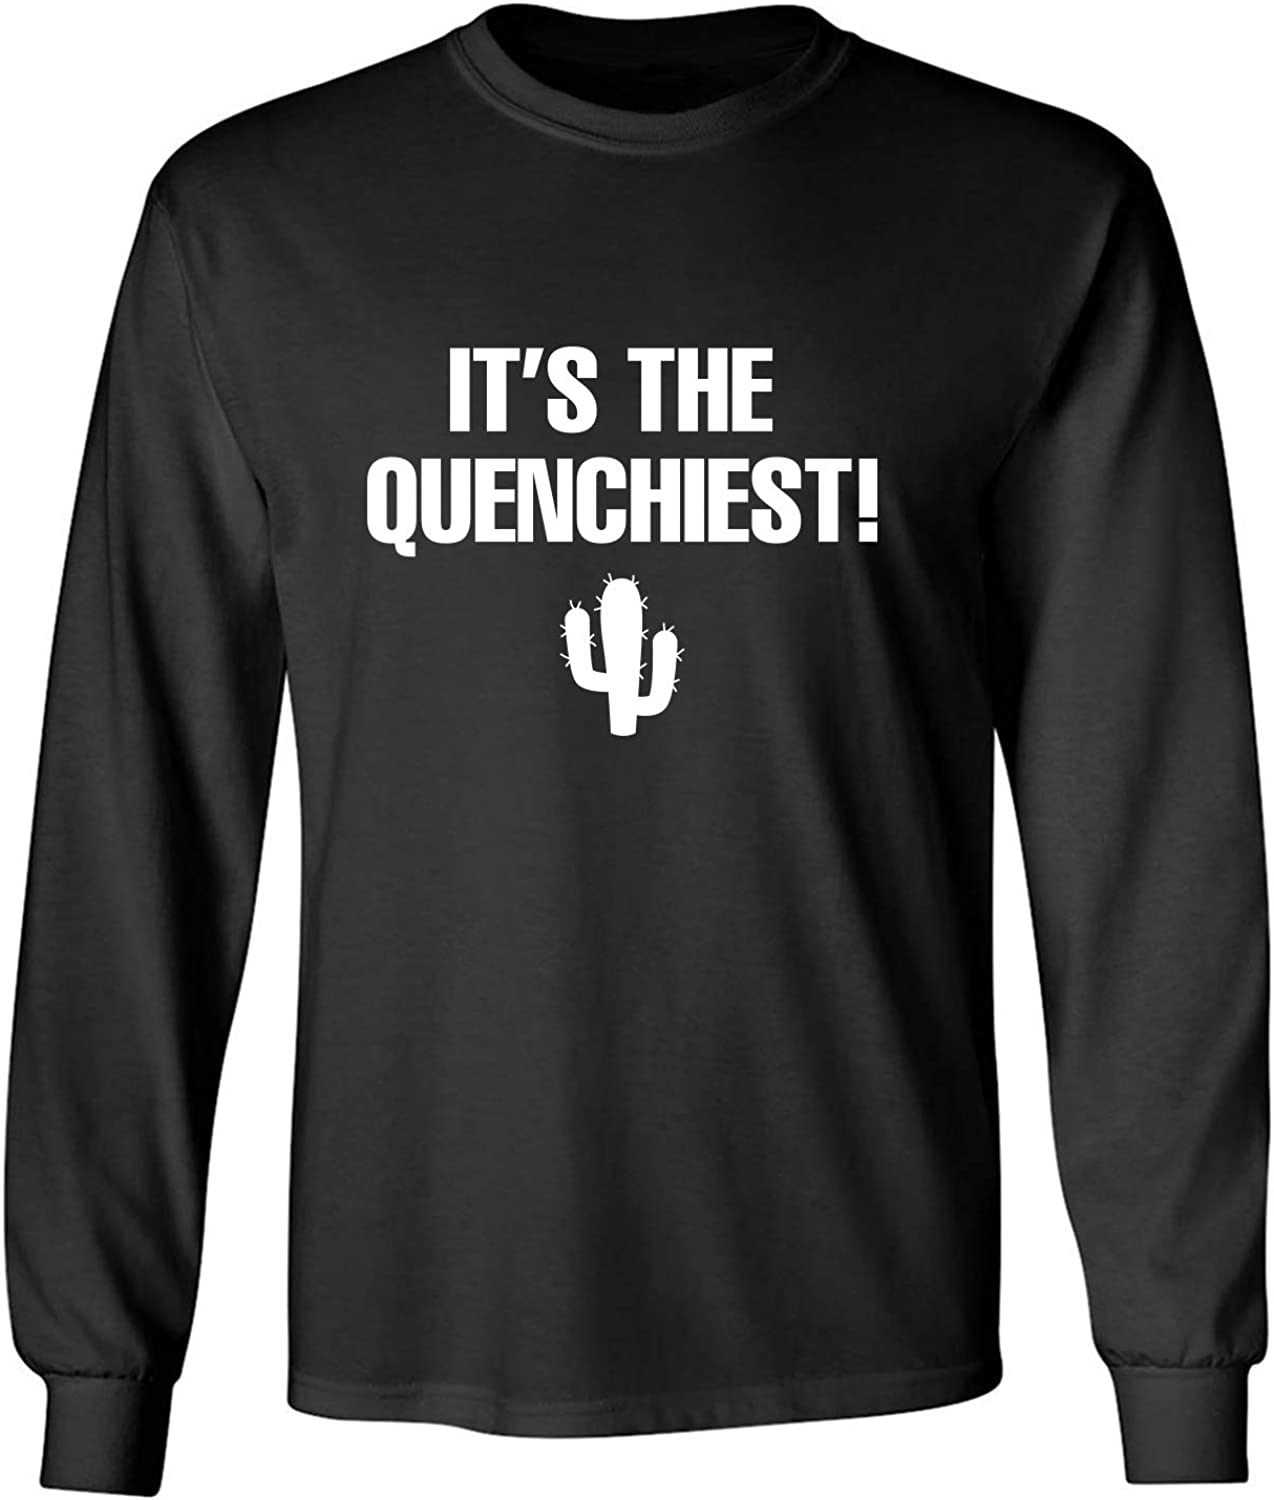 zerogravitee It's The Quenchiest! Adult Long Sleeve T-Shirt